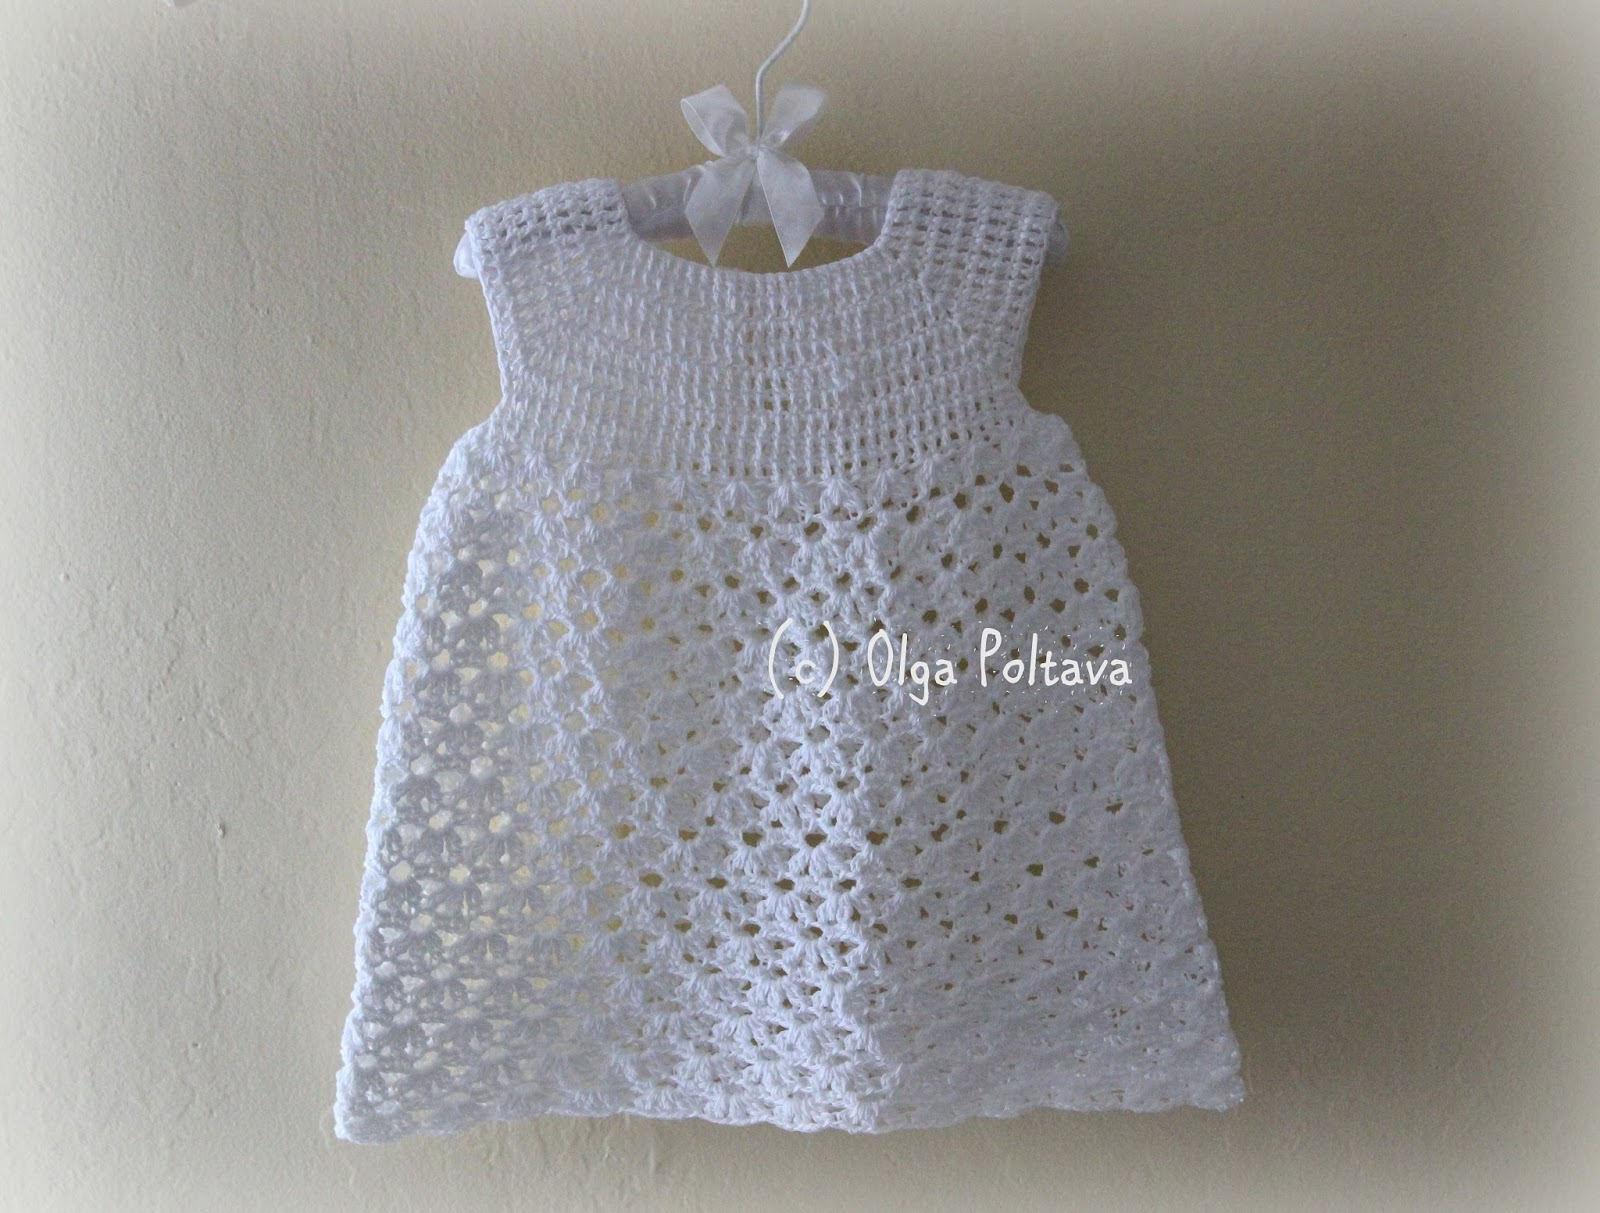 Crochet Stitches For Dresses : Lacy Crochet: Two New Patterns: Baby Dress and Girls Hat